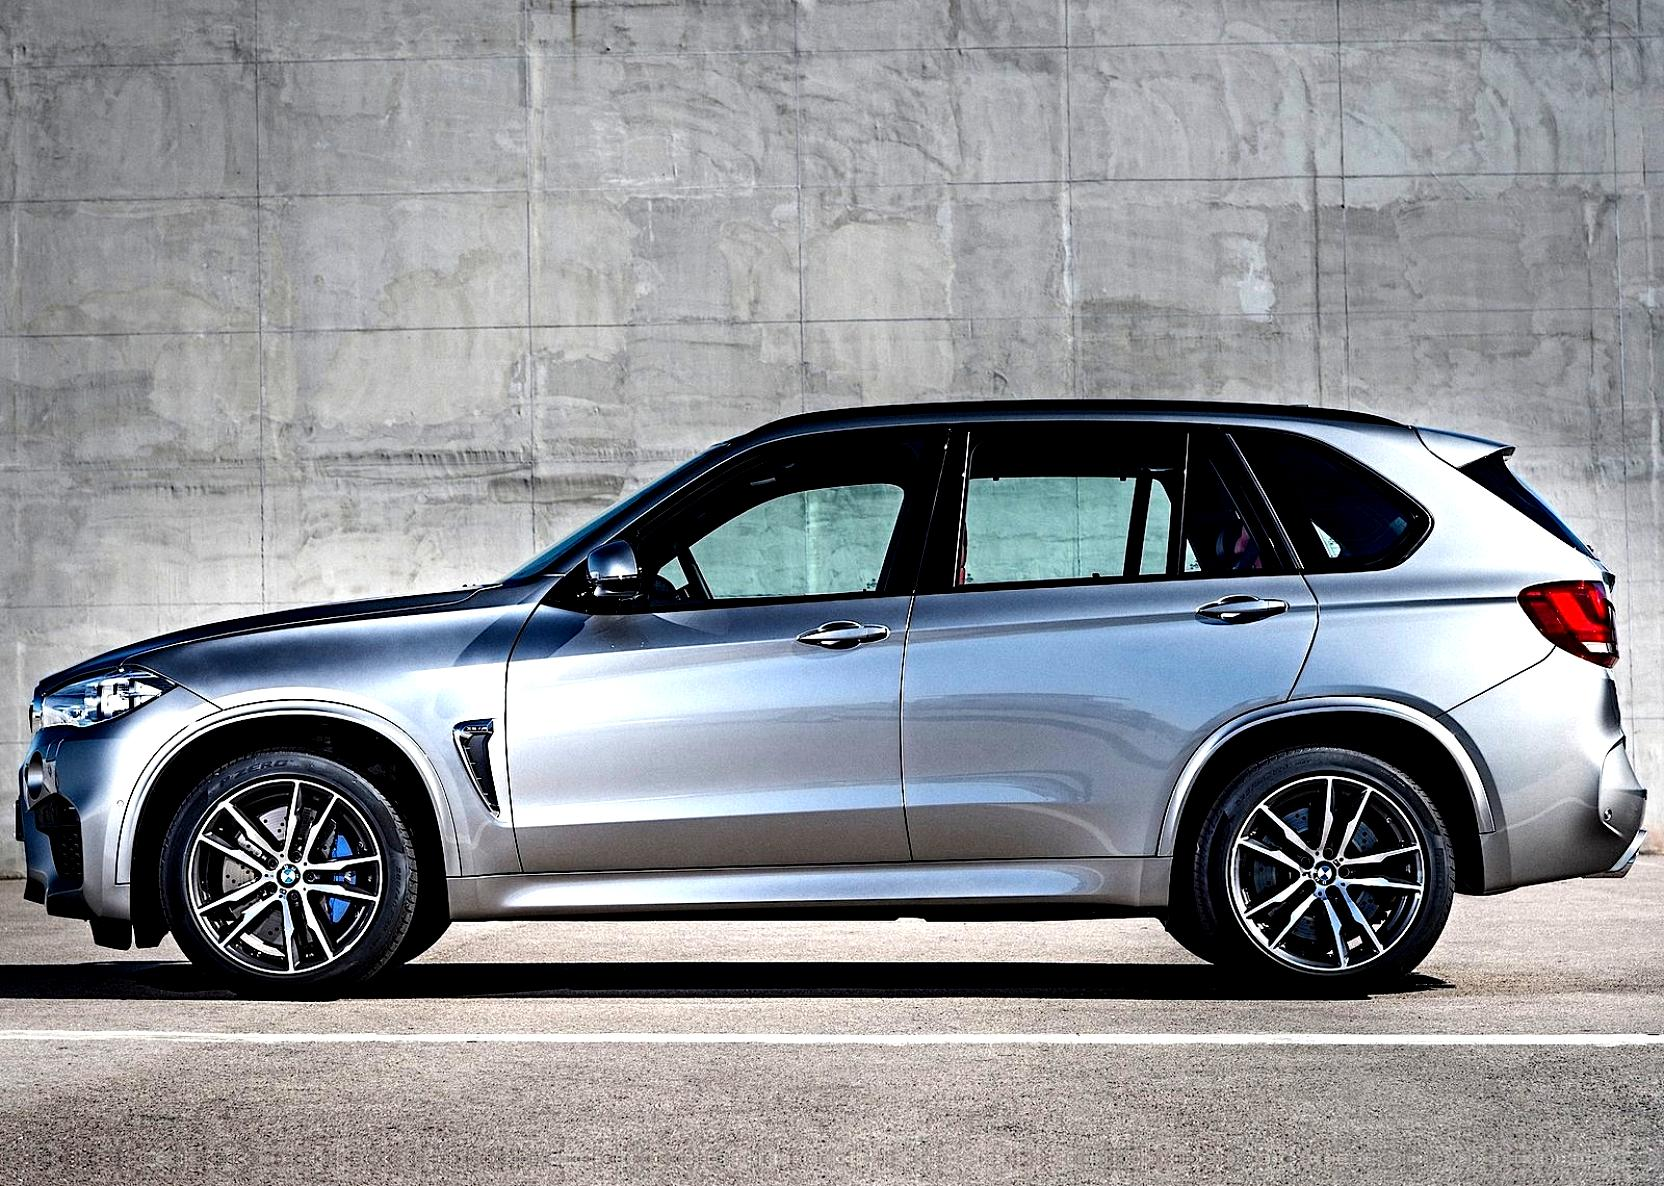 Bmw X5m 2014 On Motoimg Com